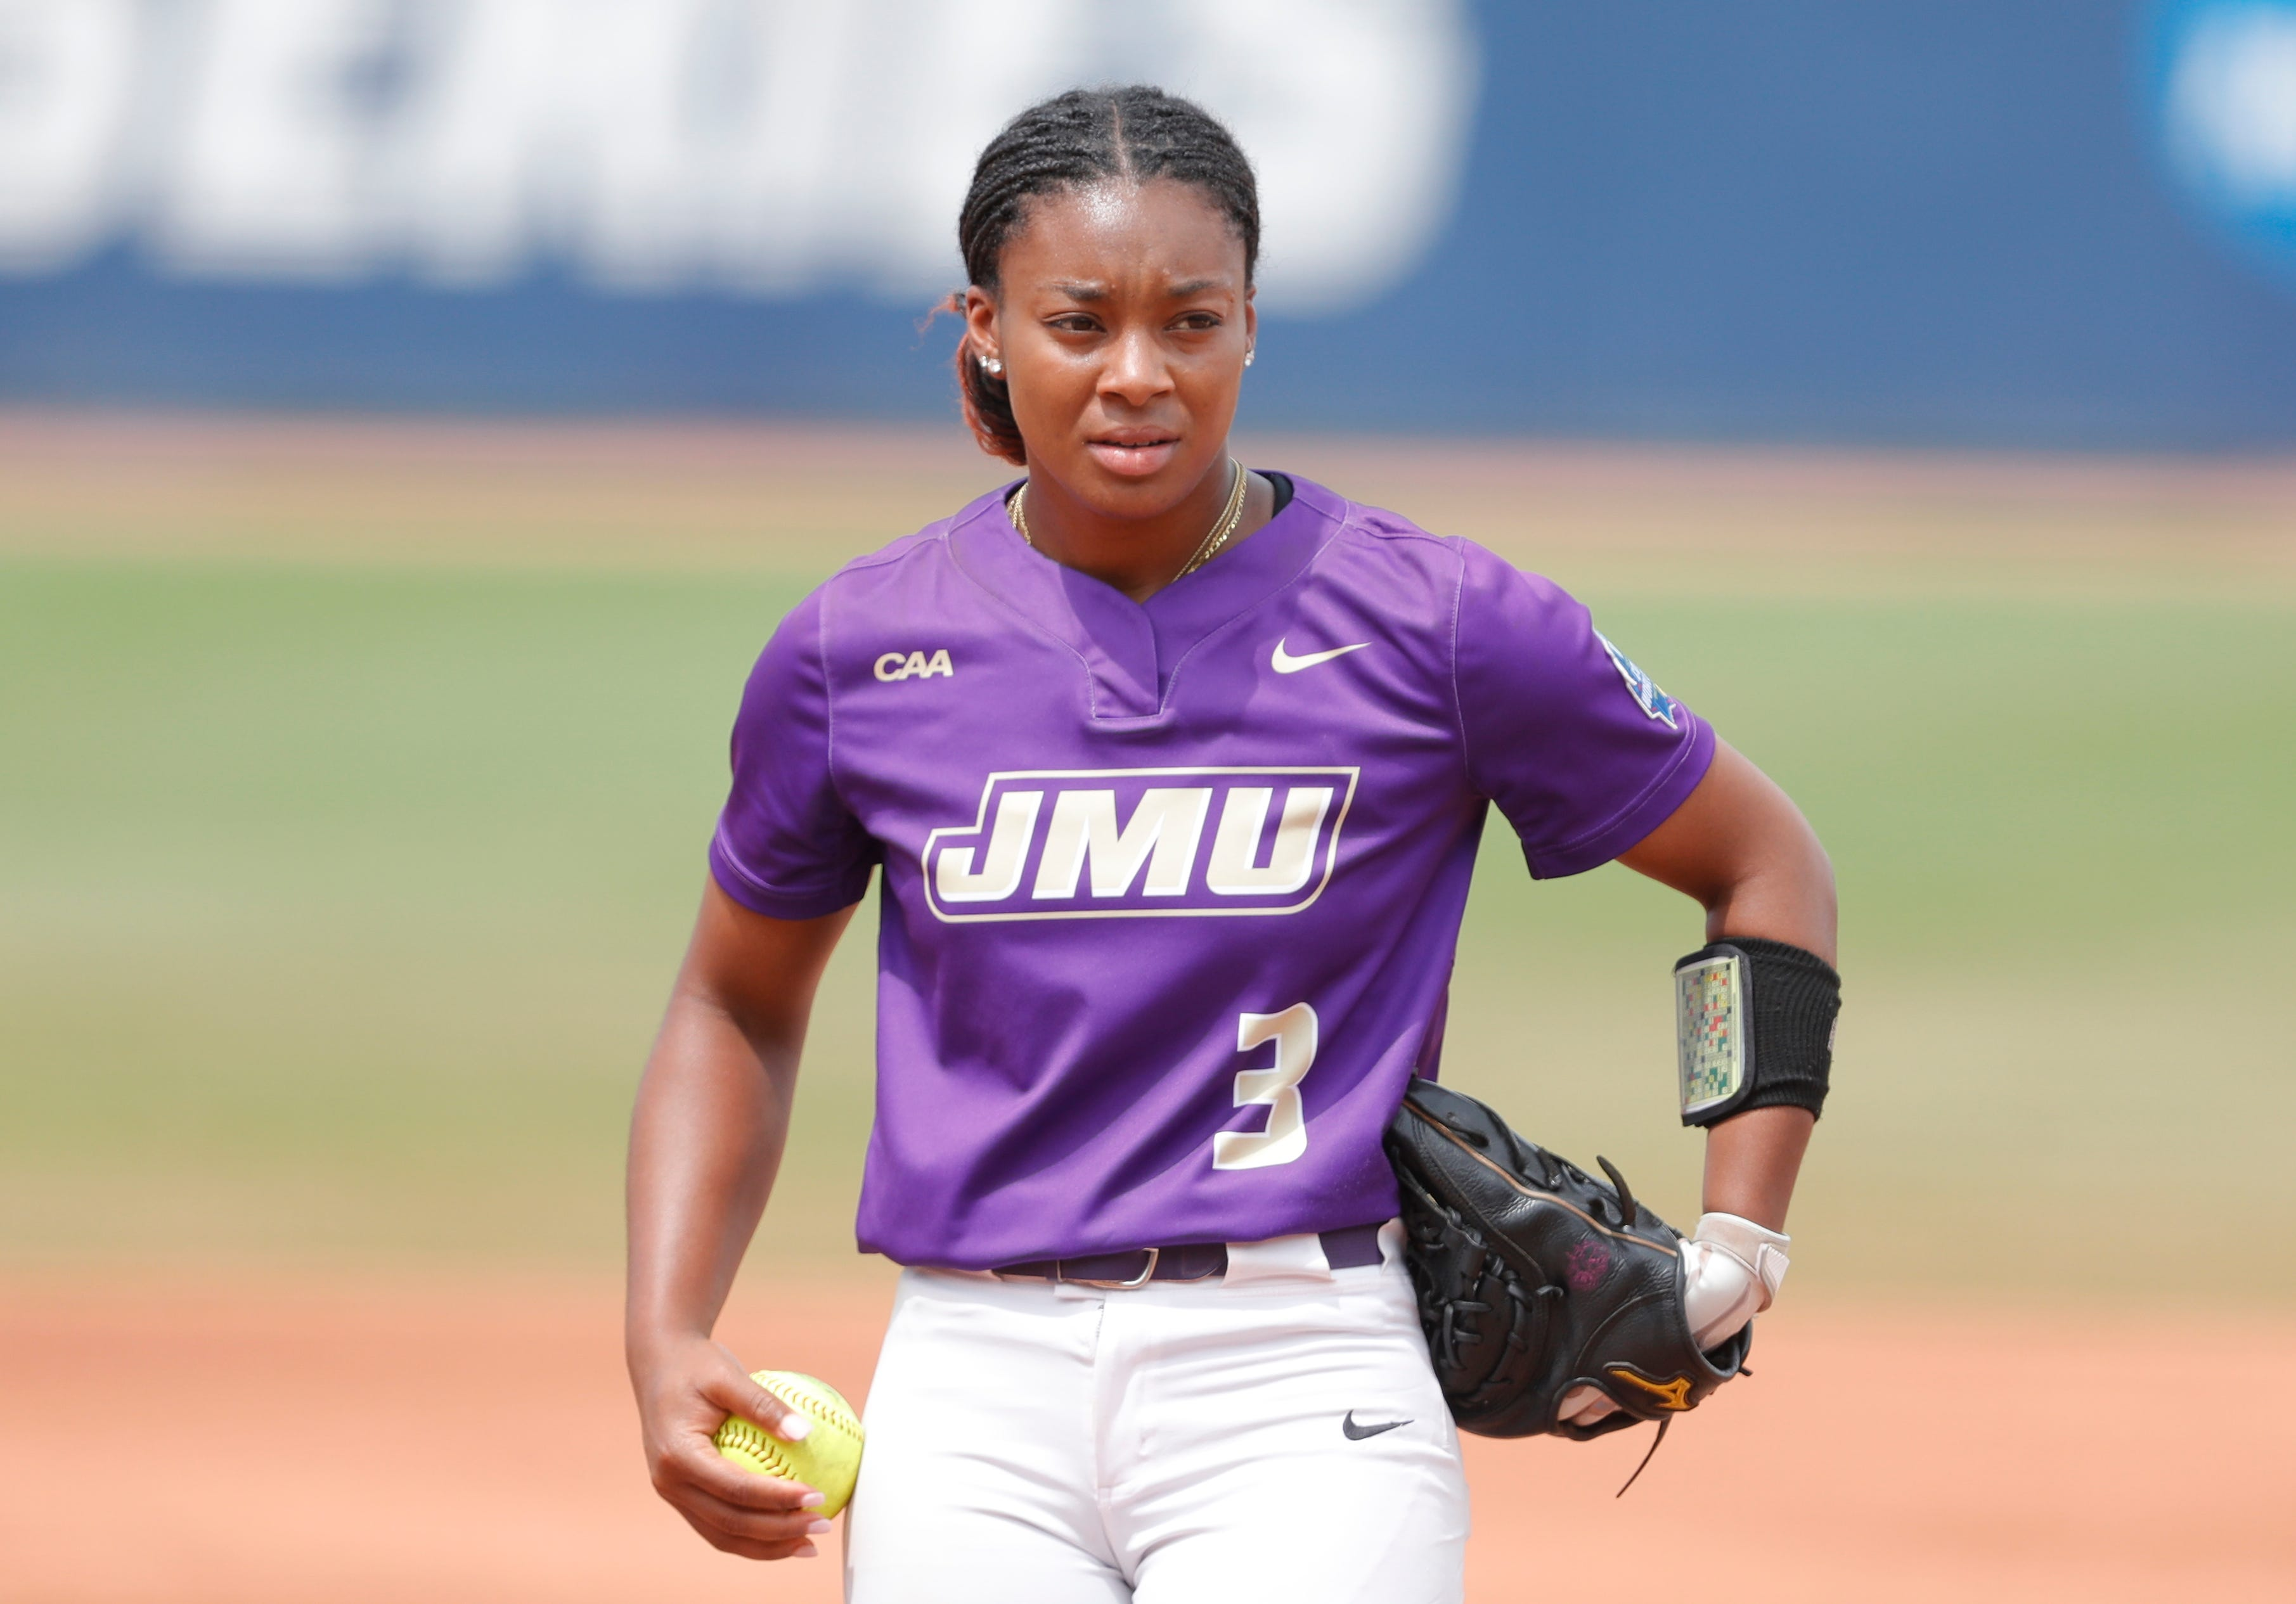 James Madison'sOdicci Alexander named Pitcher of the Year, signs with USSSA Pride